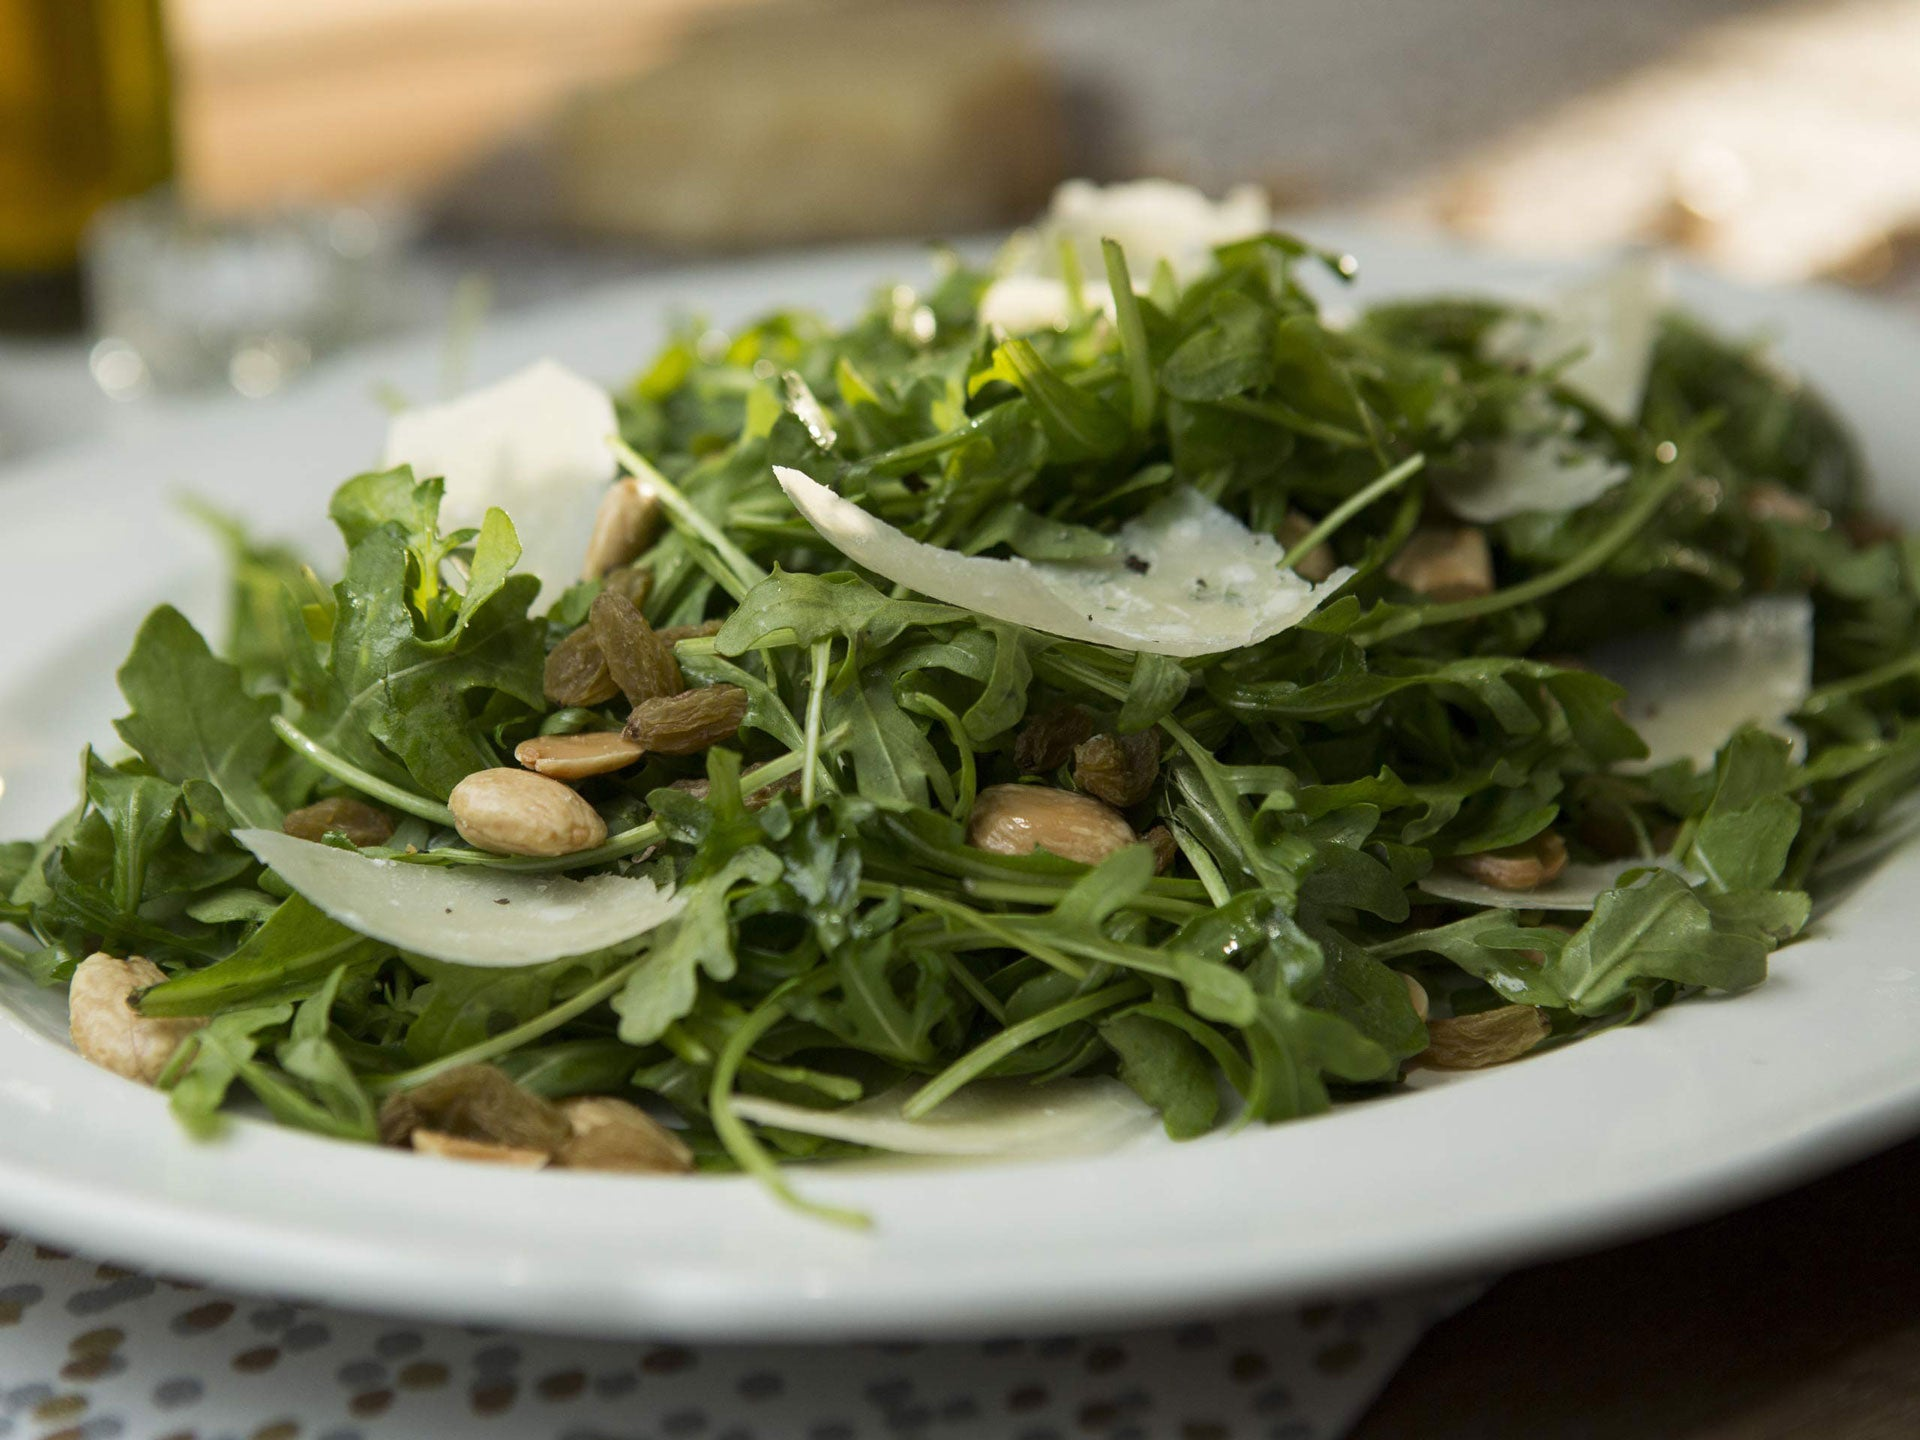 Arugula salad with shaved Parmesan cheese and marcona almonds